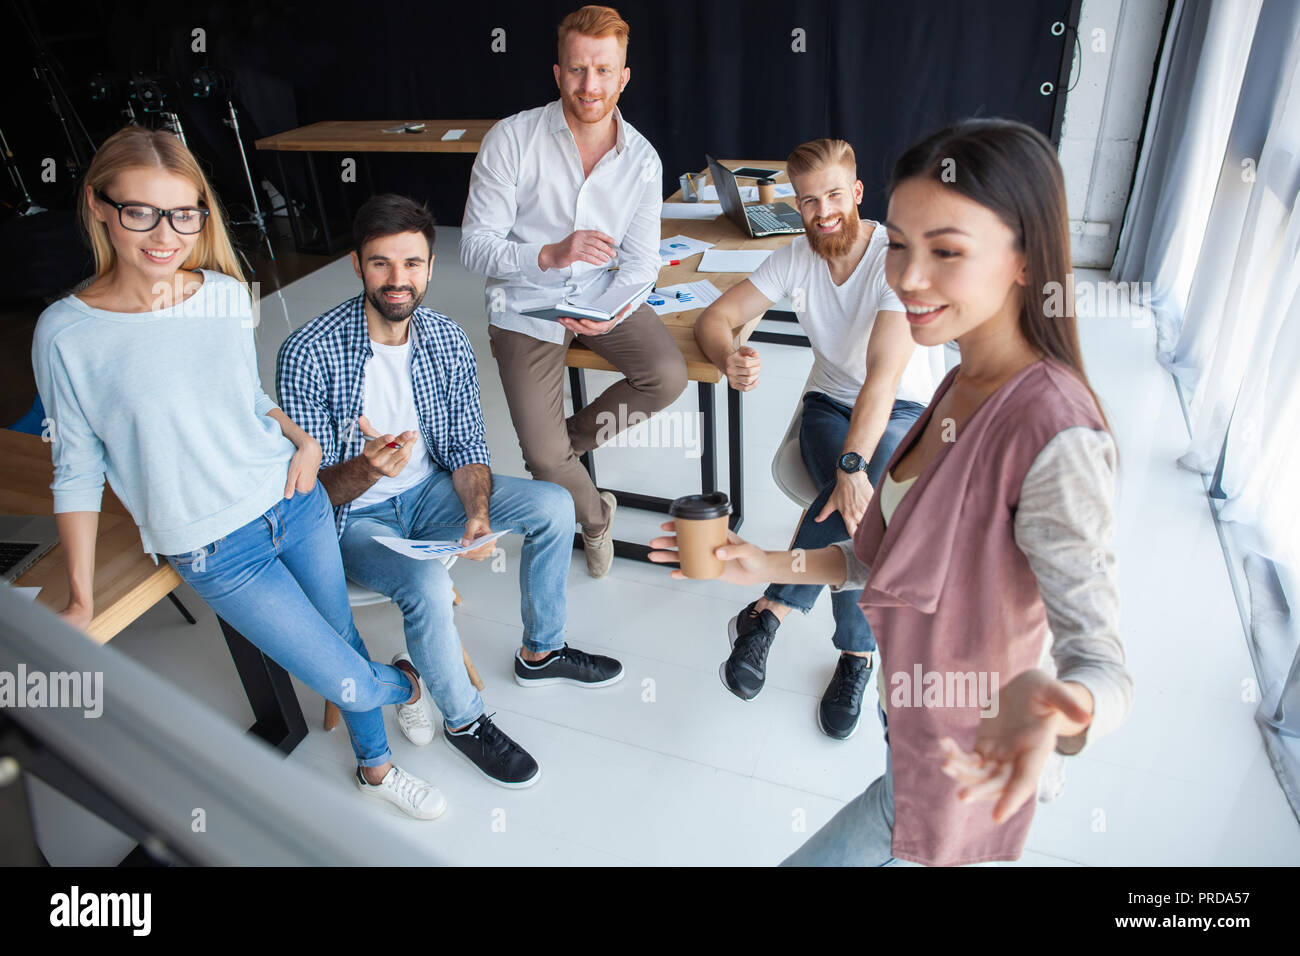 Group of young colleagues dressed casual standing together in modern office and brainstorming. - Stock Image